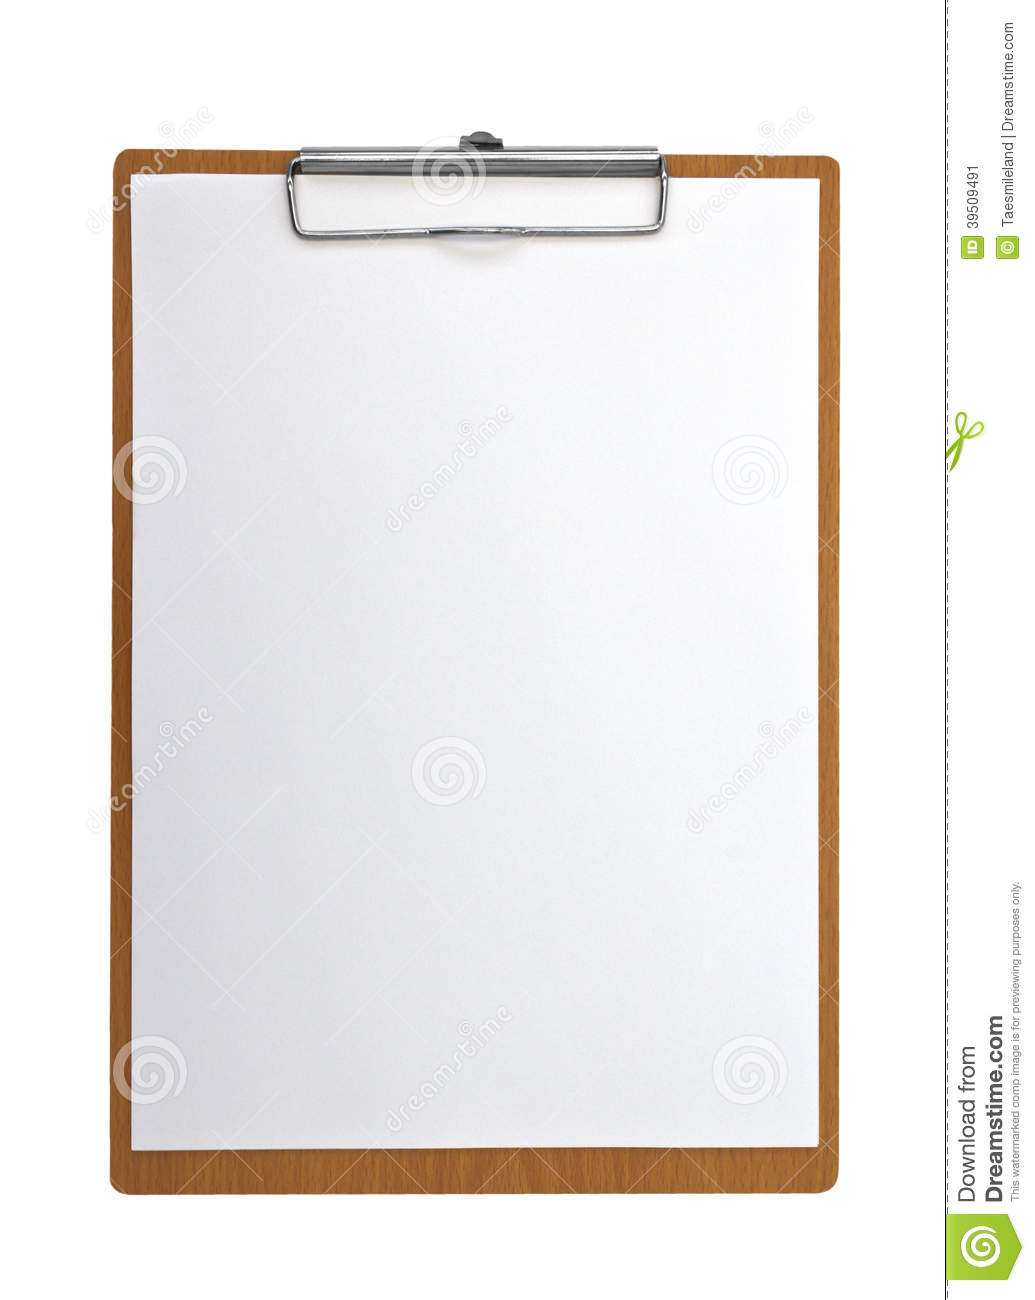 Wooden Clip board and paper